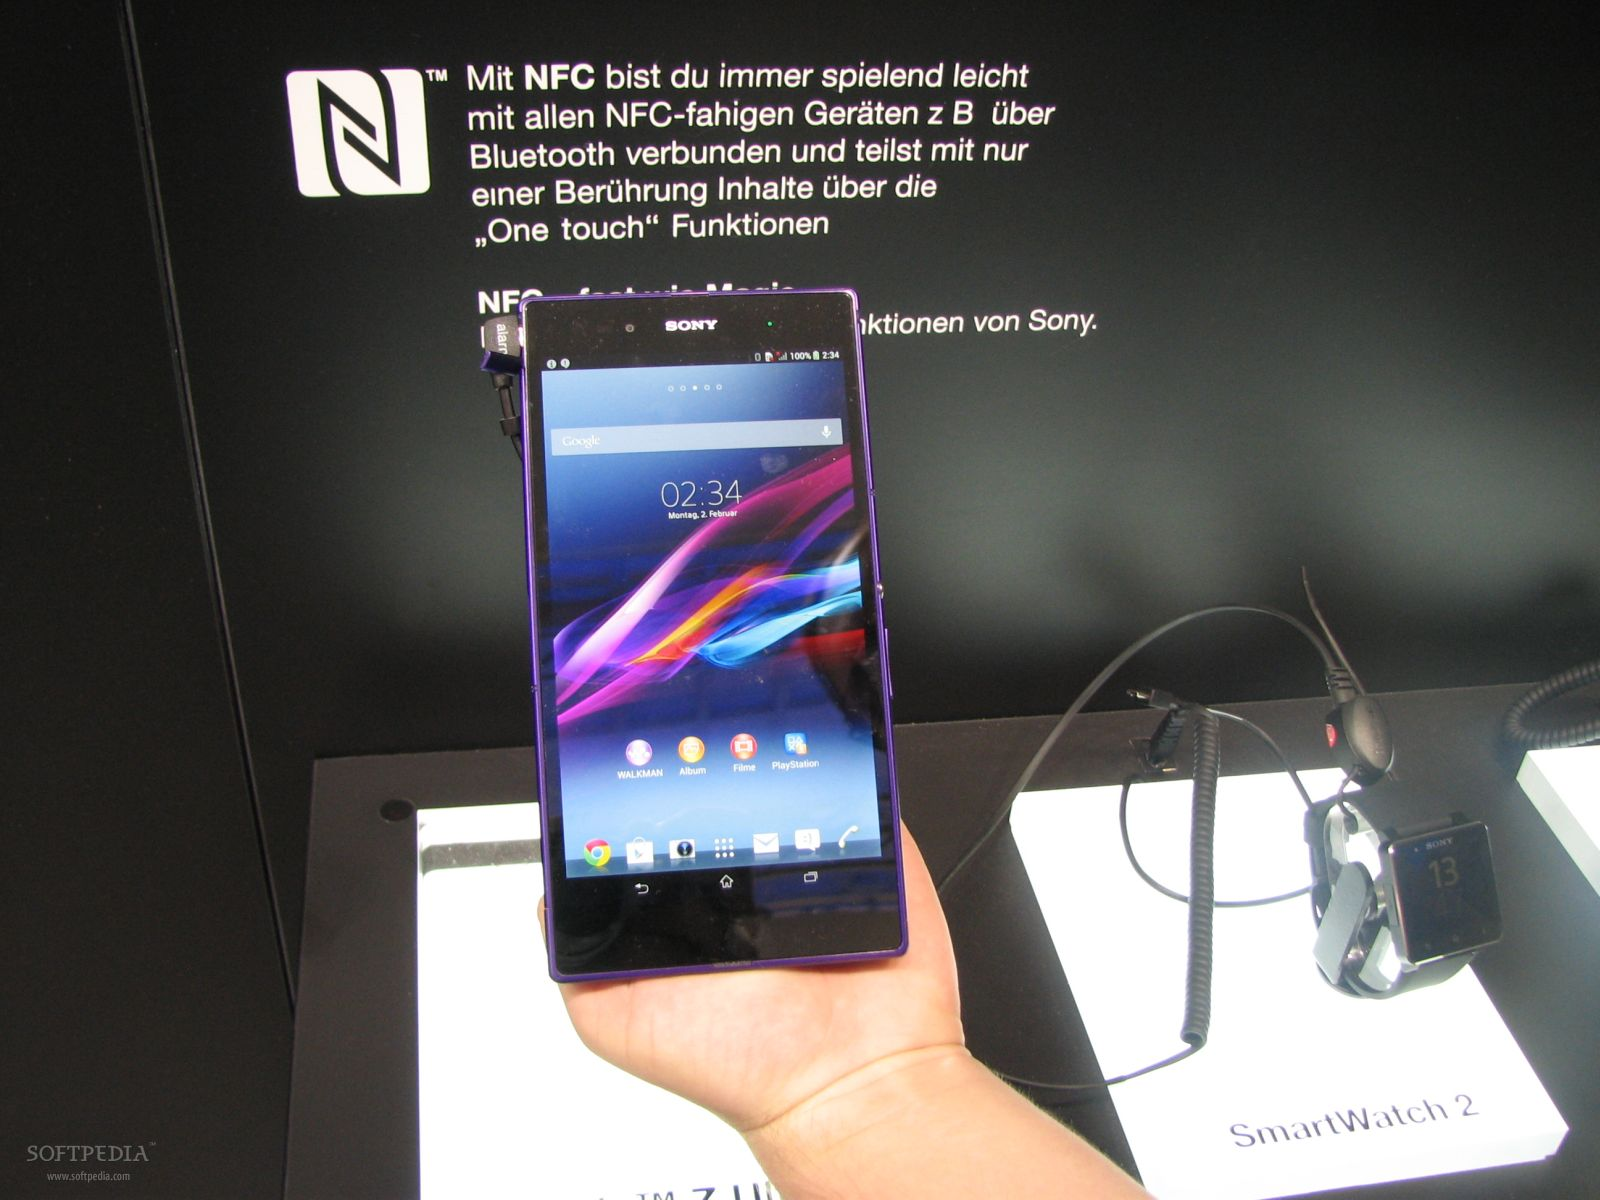 Bell Ends The Life Of Sony Xperia Z Ultra On Its Network